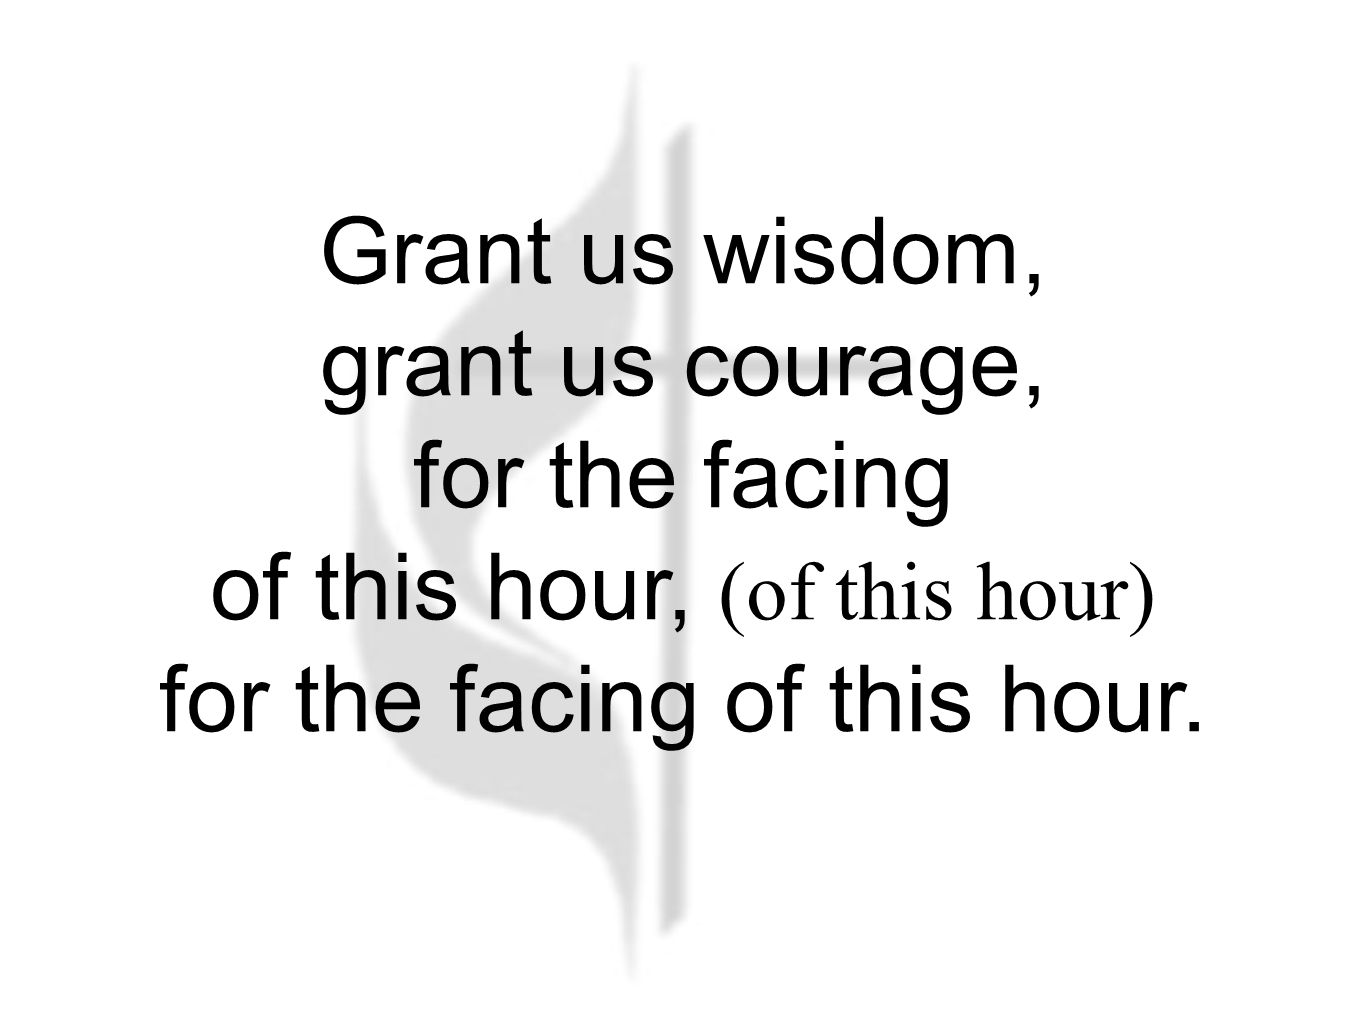 Grant us wisdom, grant us courage, for the facing of this hour, (of this hour) for the facing of this hour.